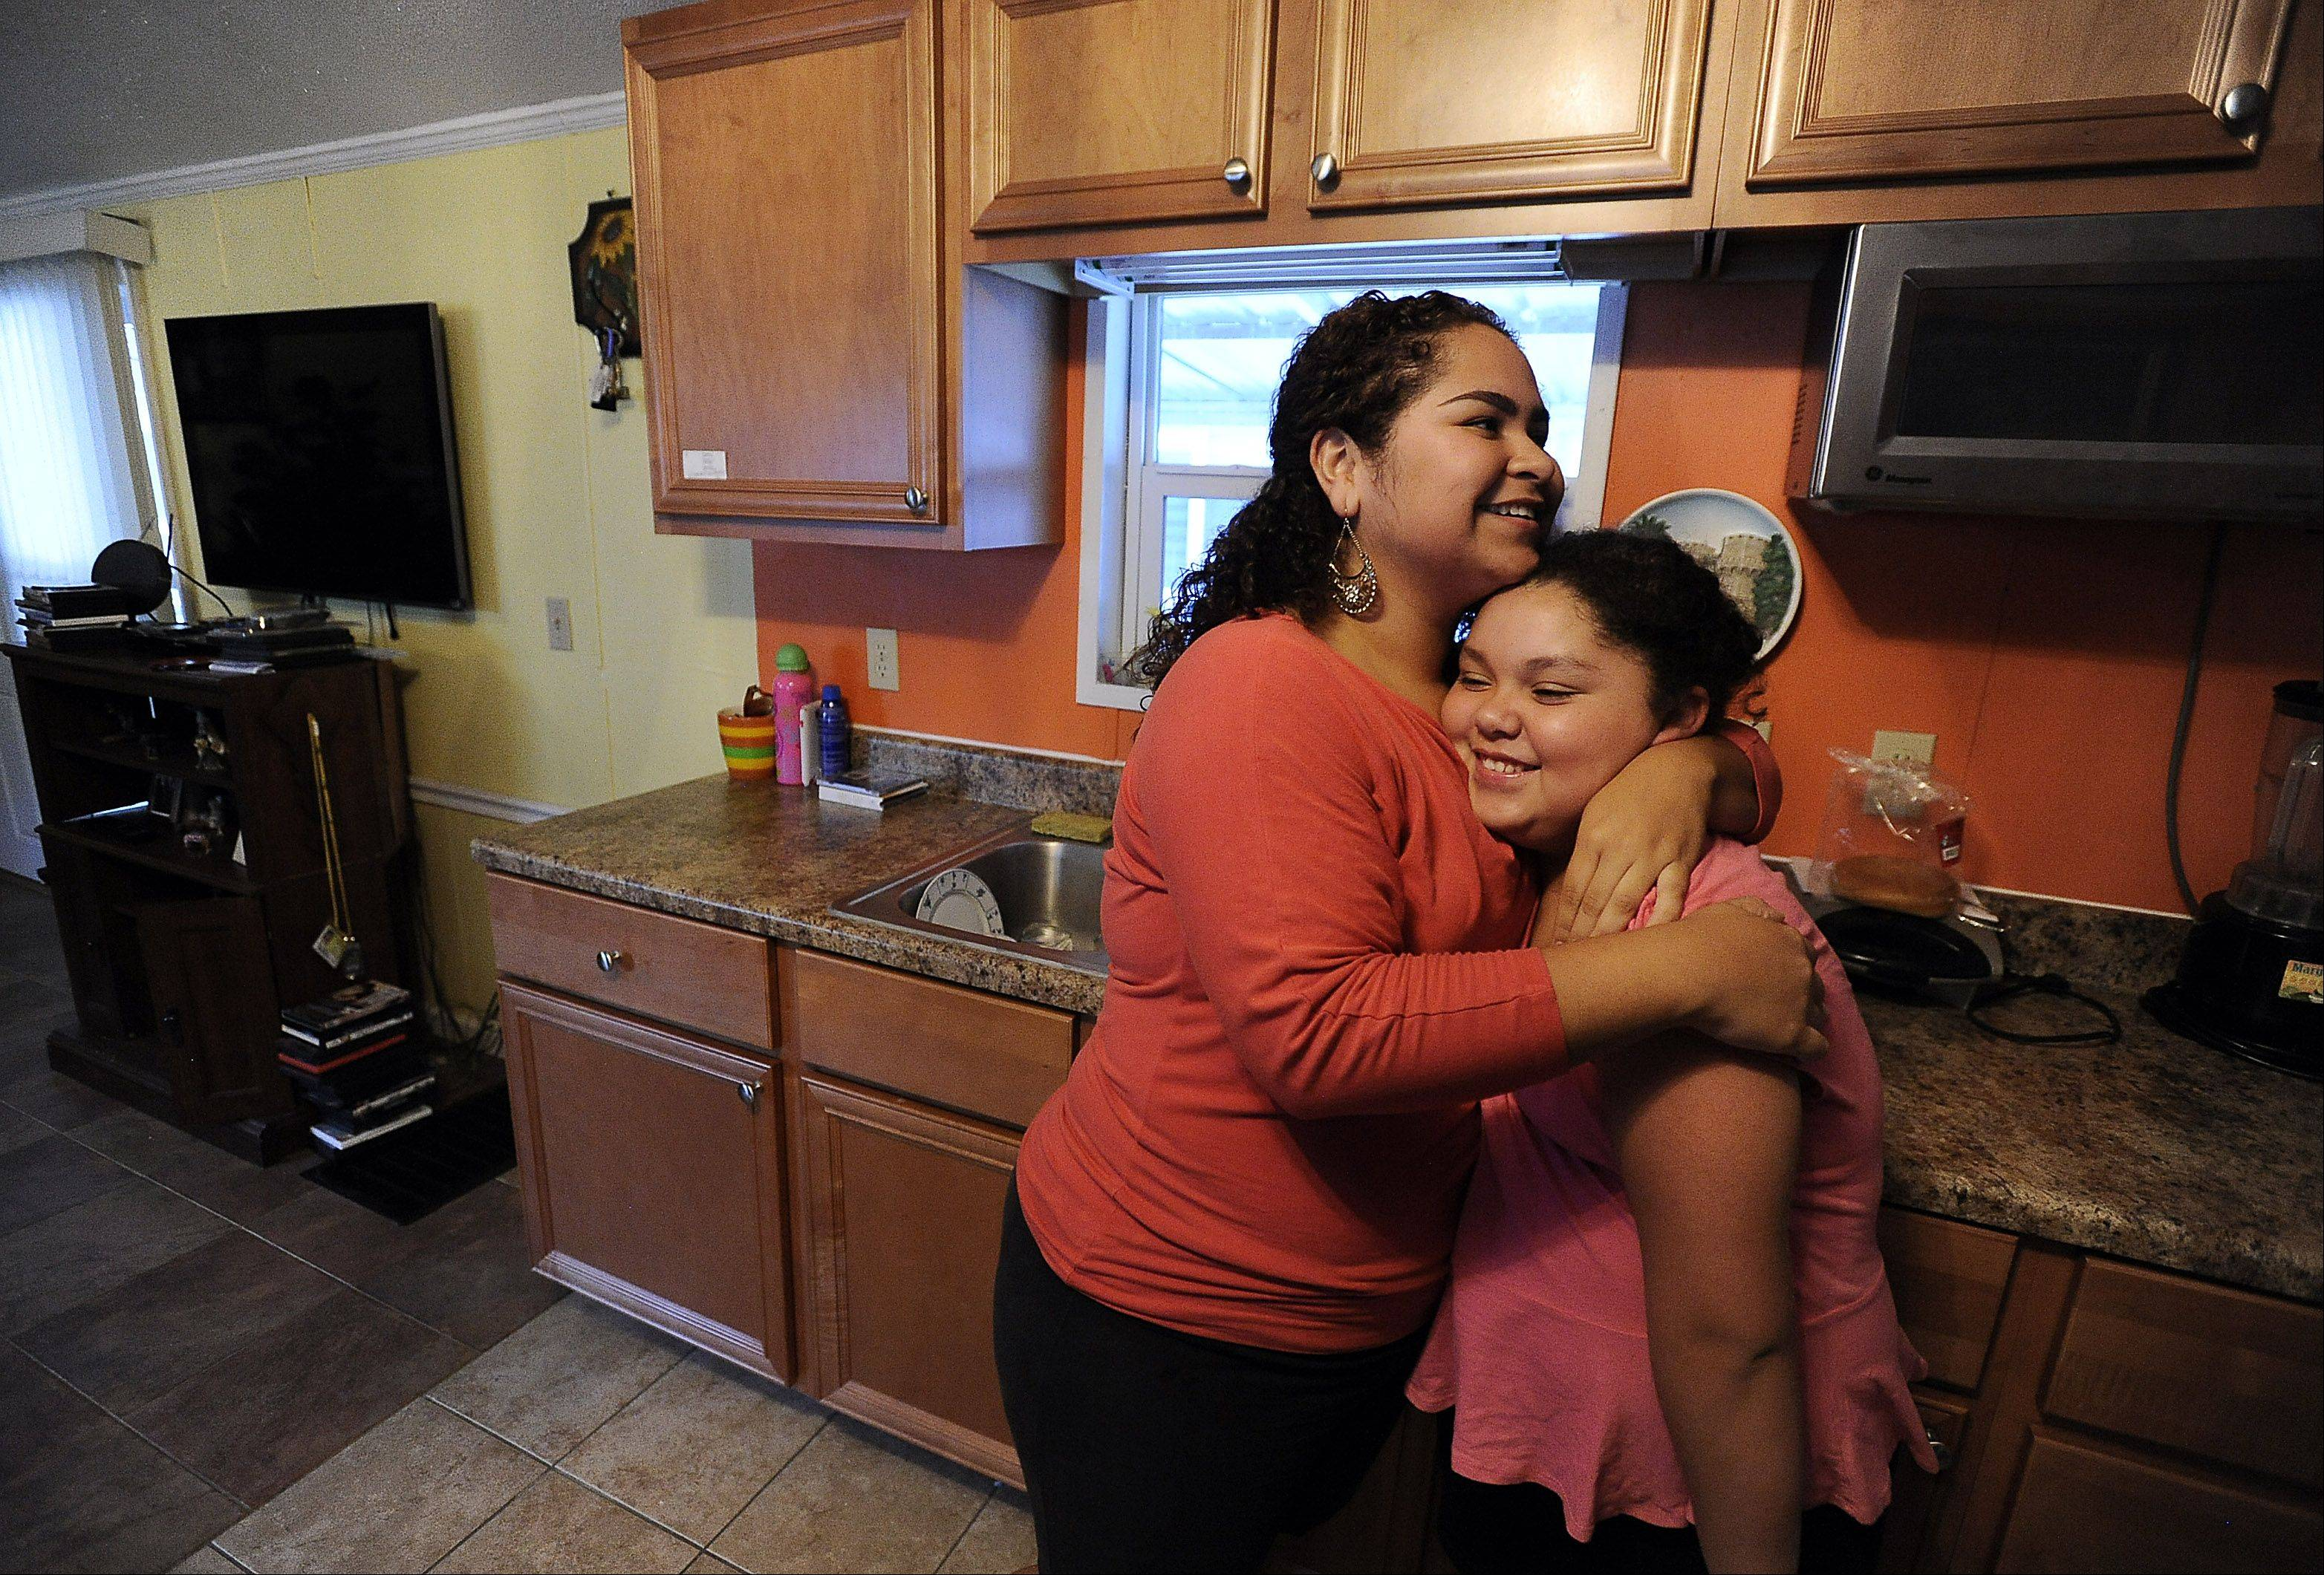 Greta Ramirez, 12, right, and her sister Karen, 22, who live near Des Plaines, were always close. They�re more so in the two years since the death of their mother, Alicia Ramirez, at the hands of their father, Heriberto Ramirez, who was convicted of her murder last year.